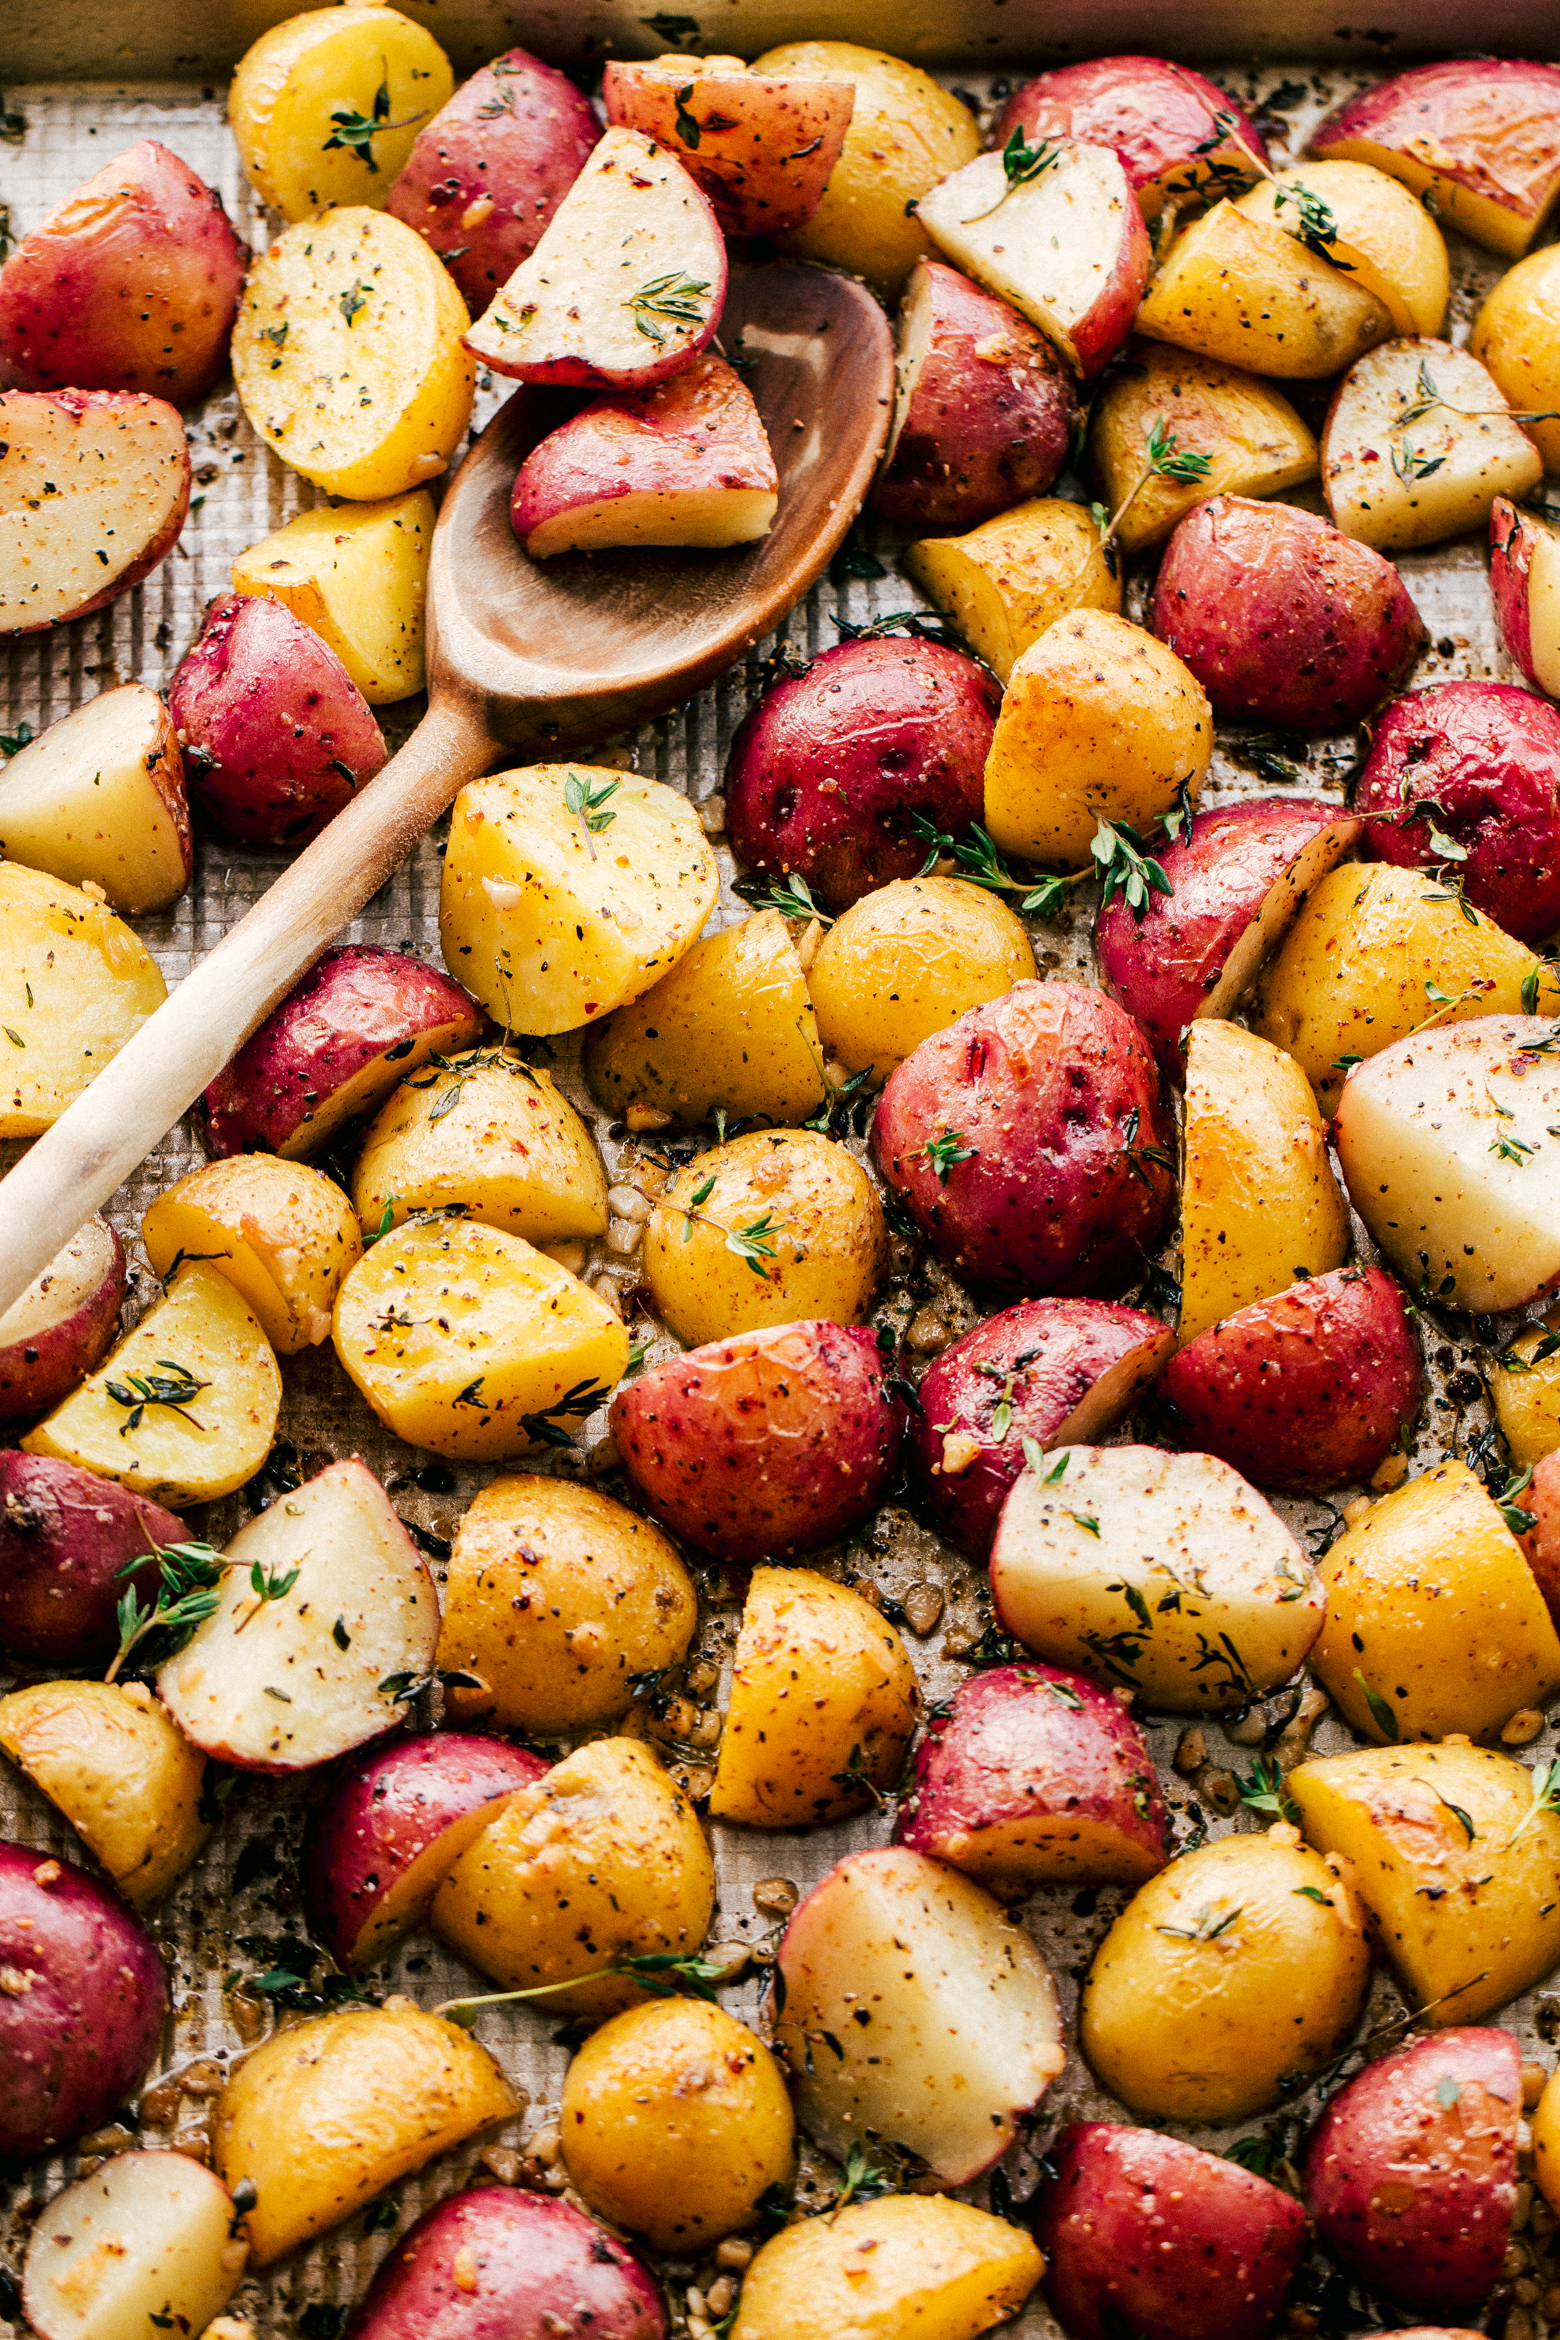 Roasted Potatoes on a sheet pan with a wooden spoon for serving topped with garlic butter and chopped rosemary by The Food Cafe